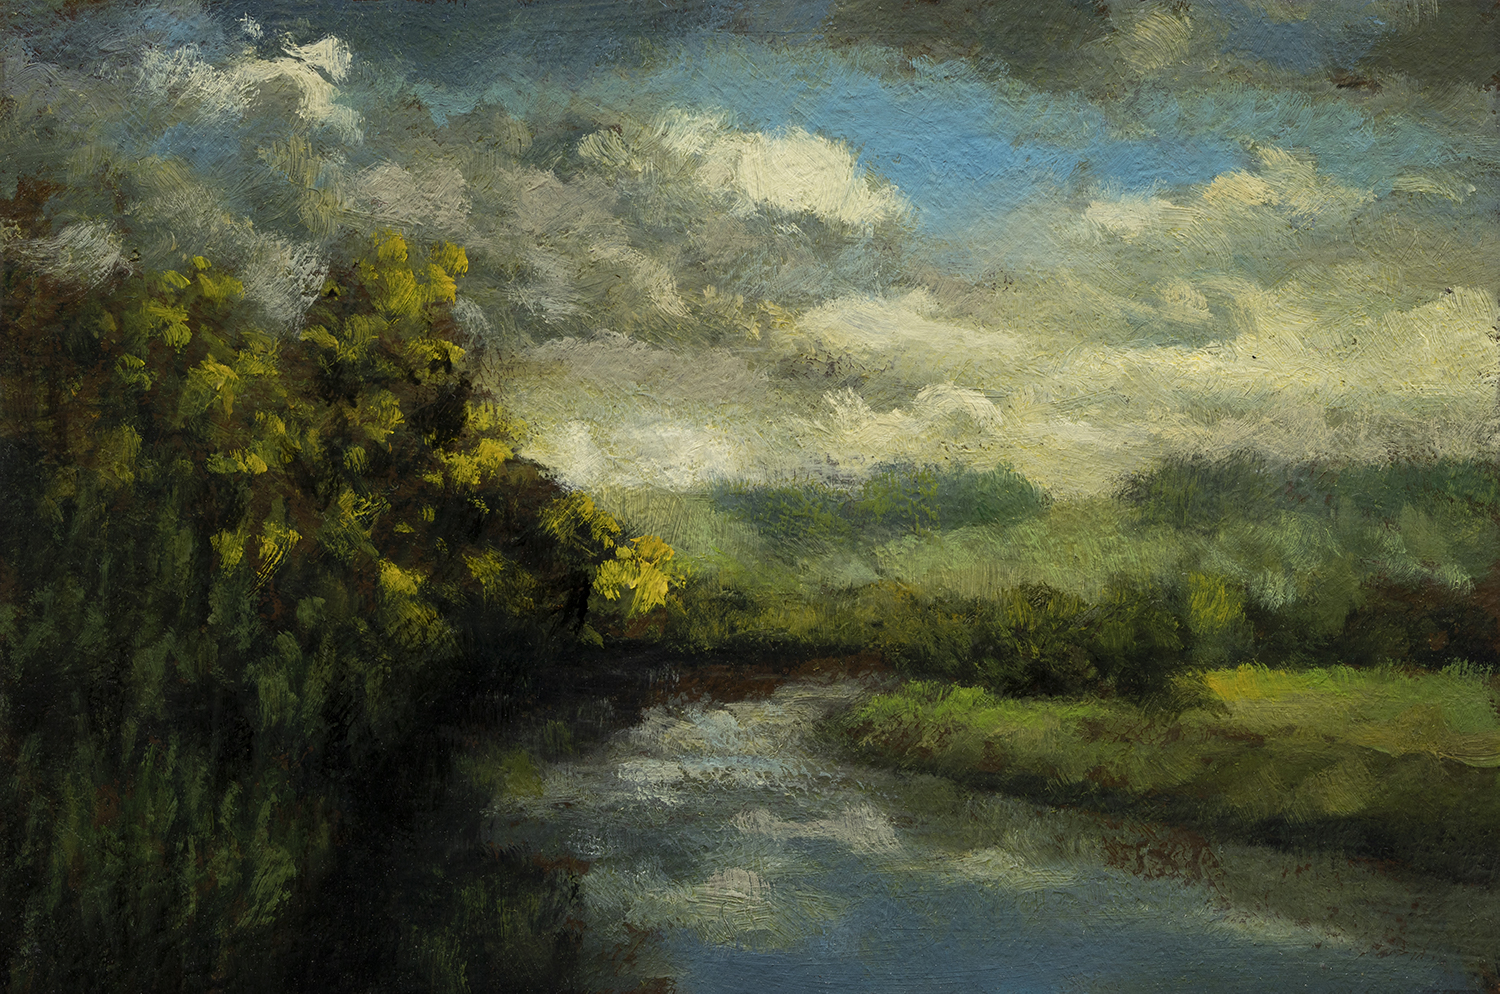 Cloudy Day by M Francis McCarthy - 4x6 Oil on Wood Panel